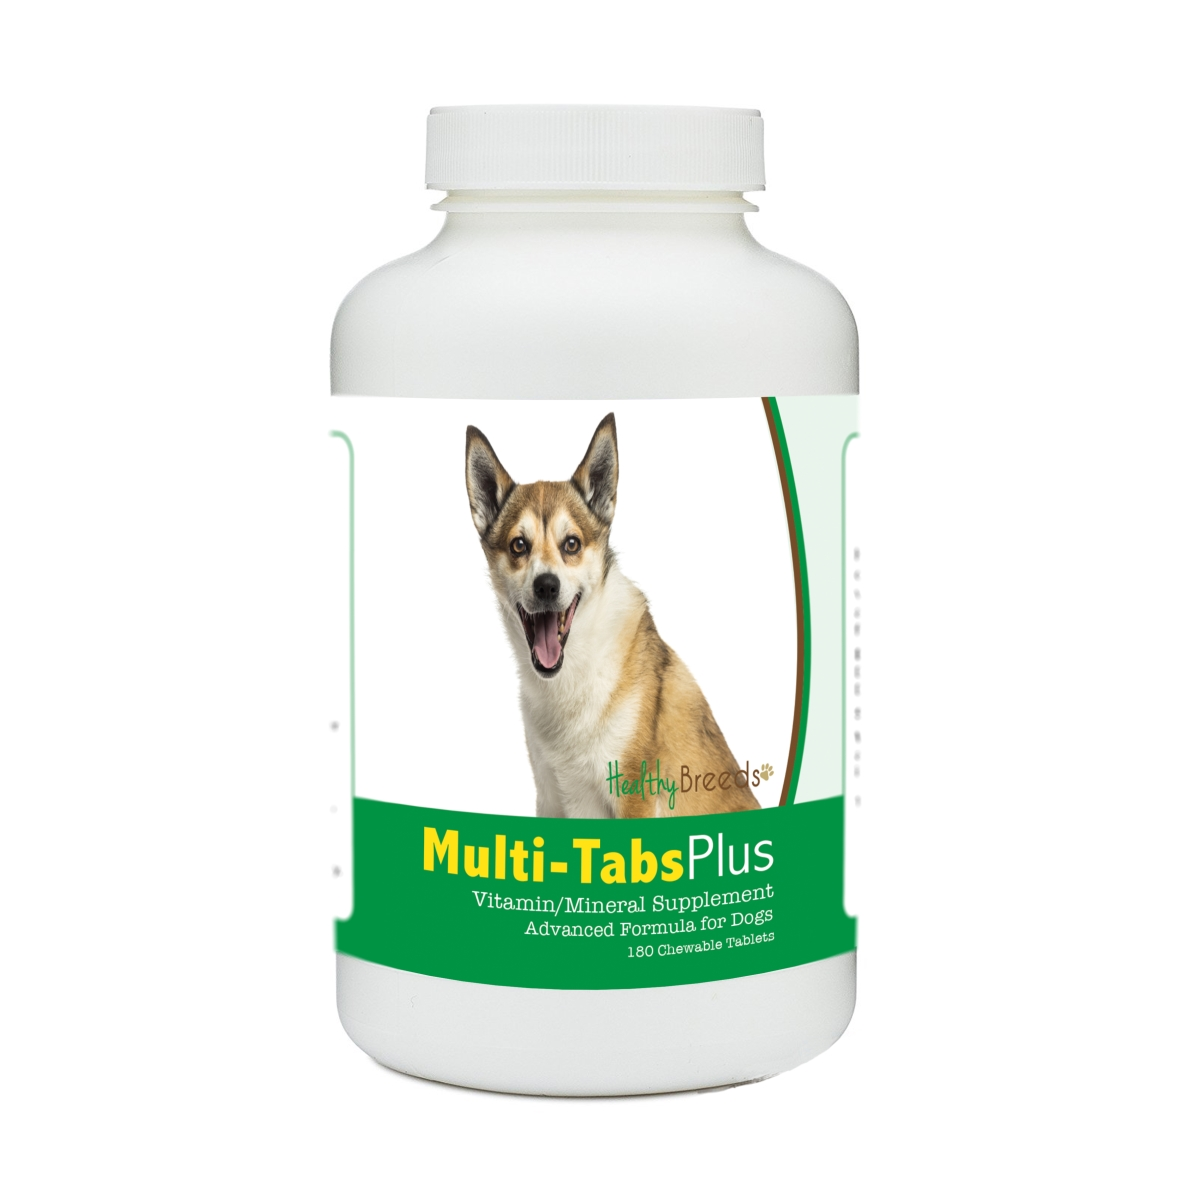 Healthy Breeds 840235174936 Norwegian Lundehund Multi-Tabs Plus Chewable Tablets - 180 Count